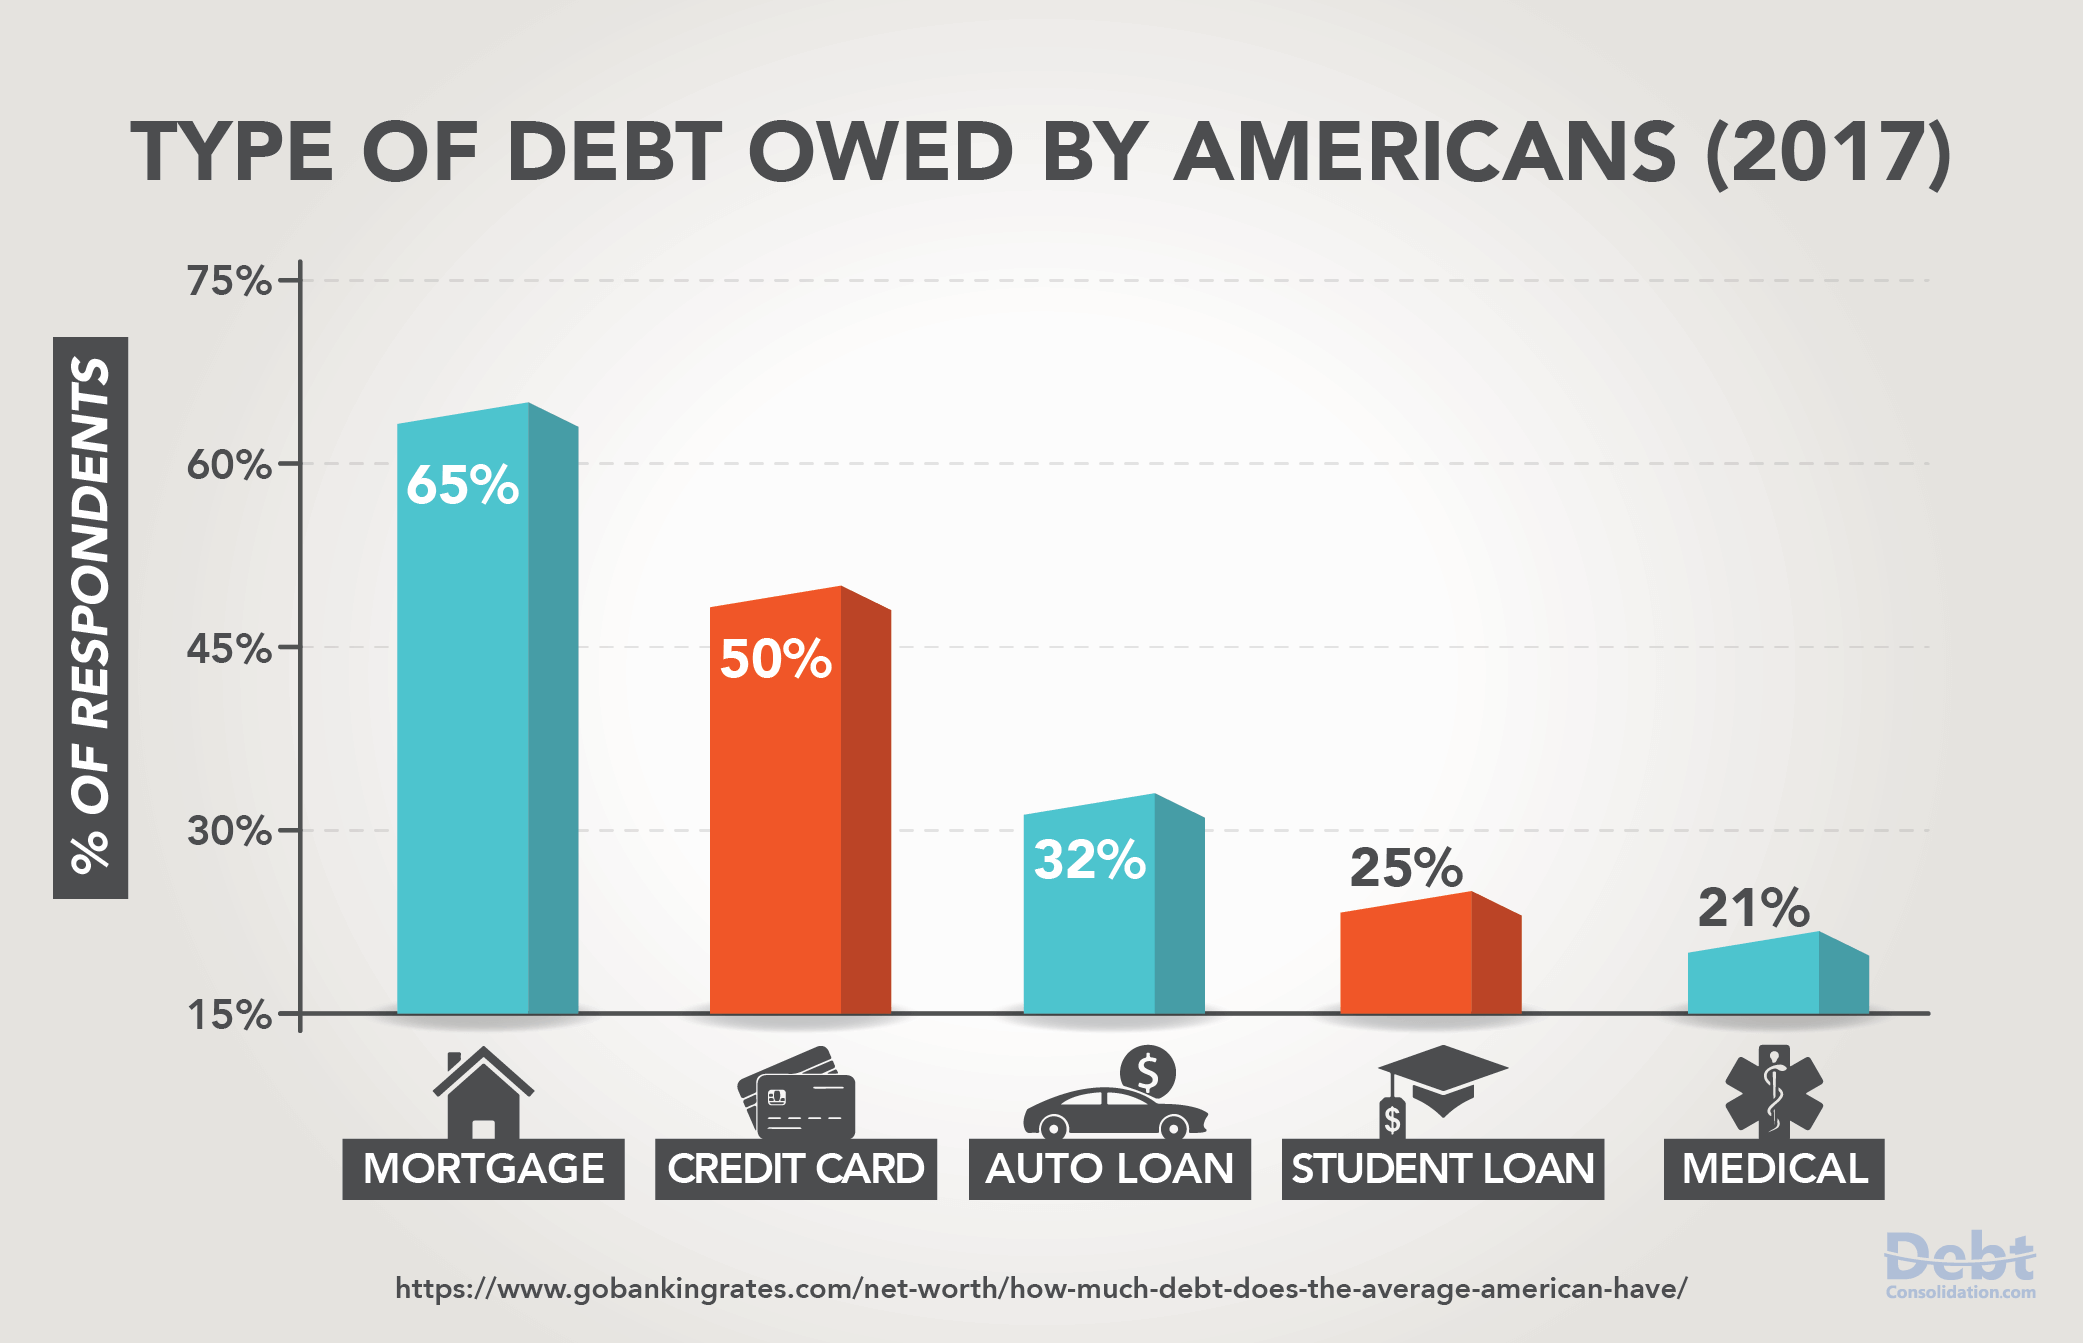 2017 Type of Debt Owned by Americans